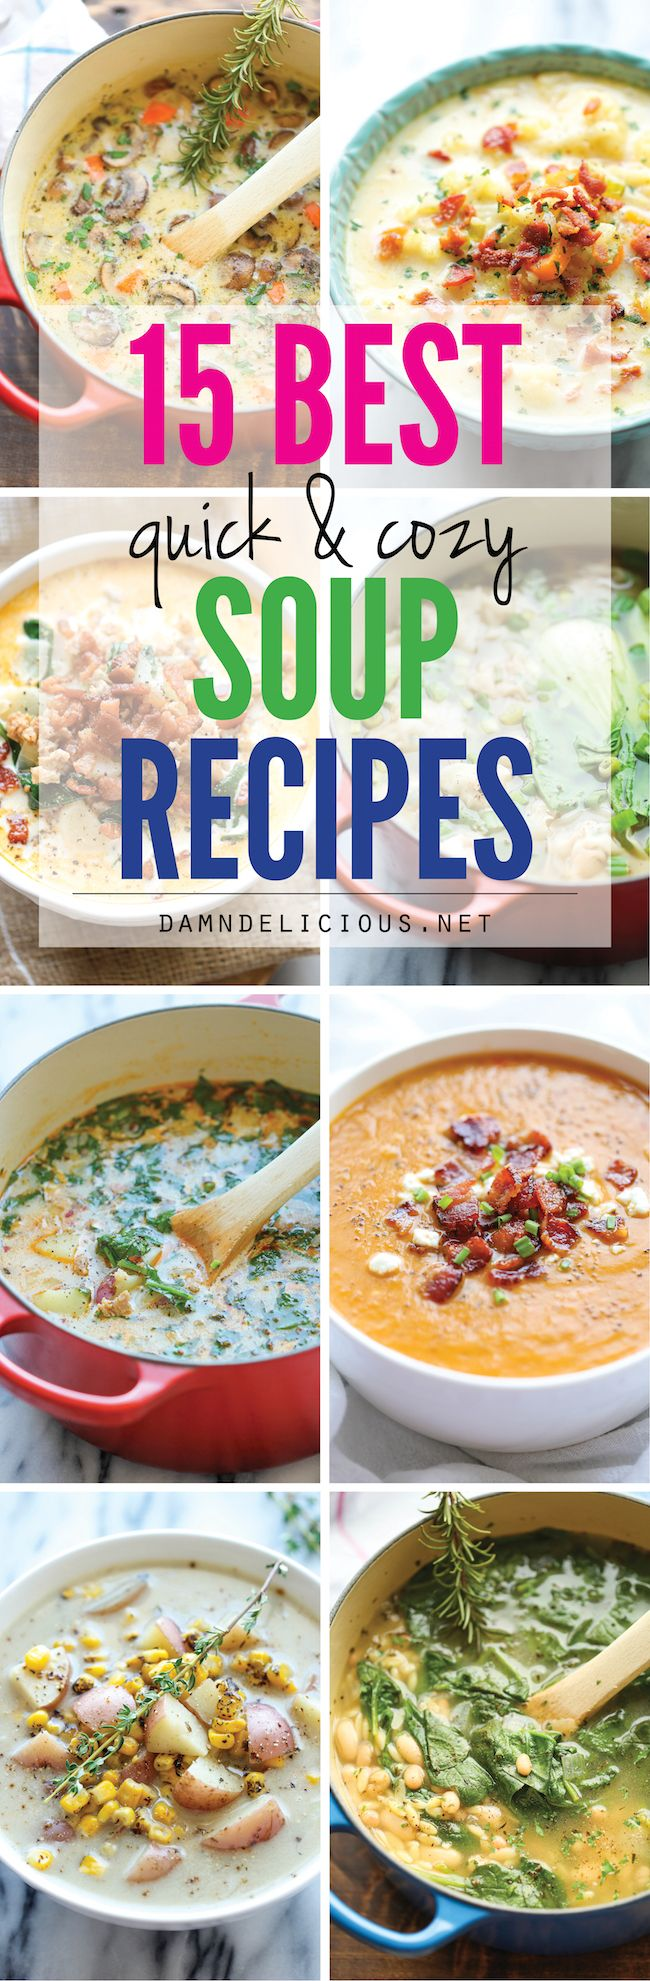 15 Best Quick and Cozy Soup Recipes #Nourishing #Soup #Delicious #Fall #Winter #Easy #Quick